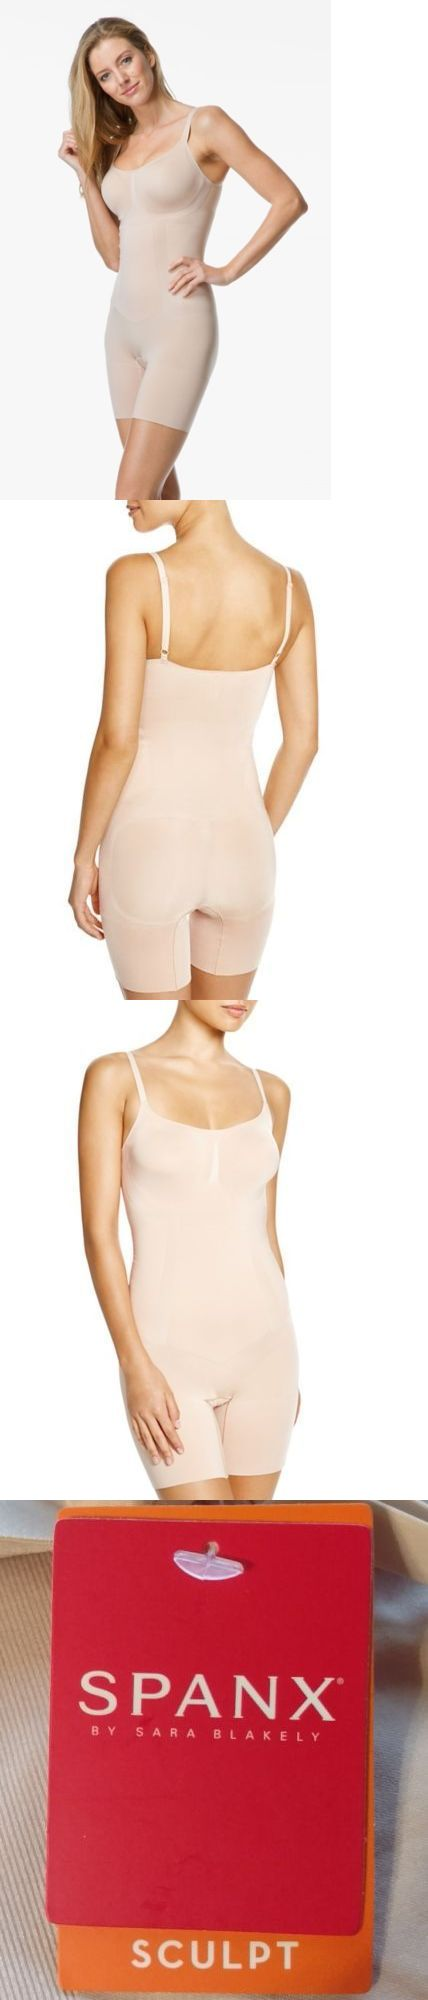 Women Shapewear: Nwt Spanx Ss1715 Oncore Mid Thigh Bodysuit Shaper Nude Sz Small S P -> BUY IT NOW ONLY: $44.99 on eBay!